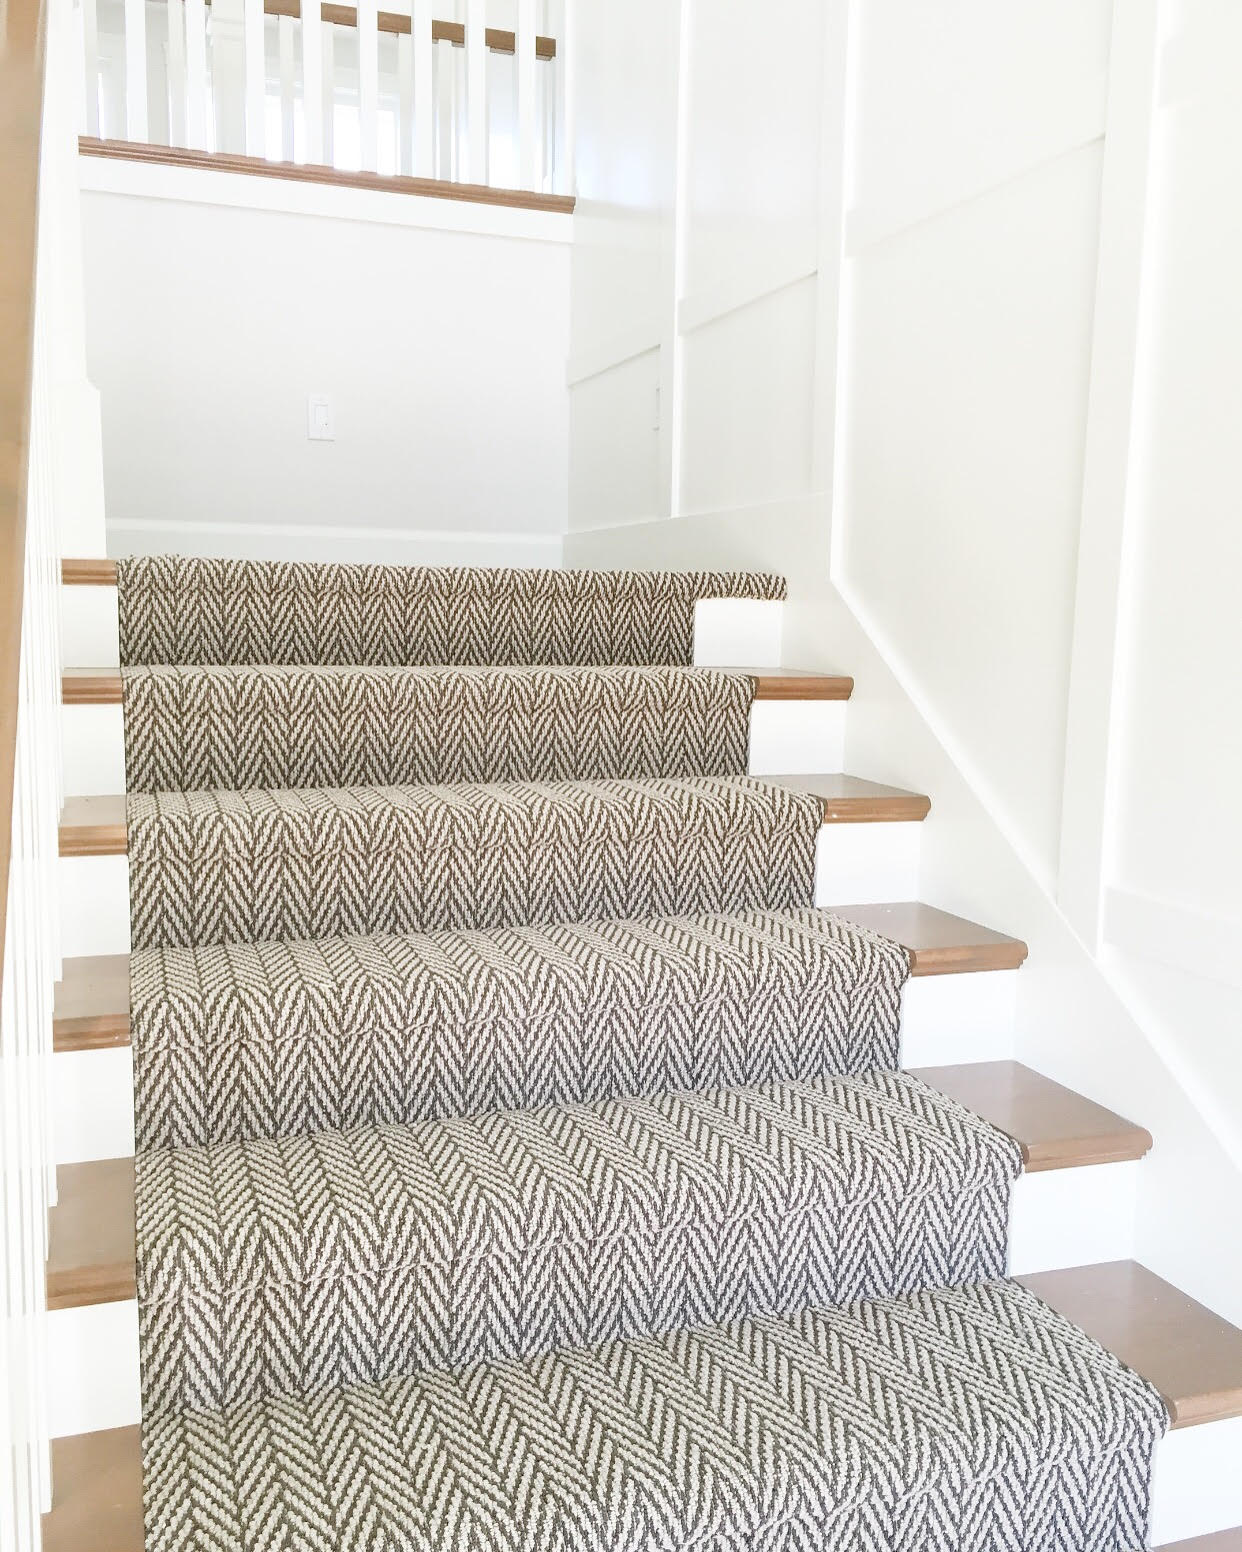 Stair Design Budget And Important Things To Consider: A Guide To Stair Runners